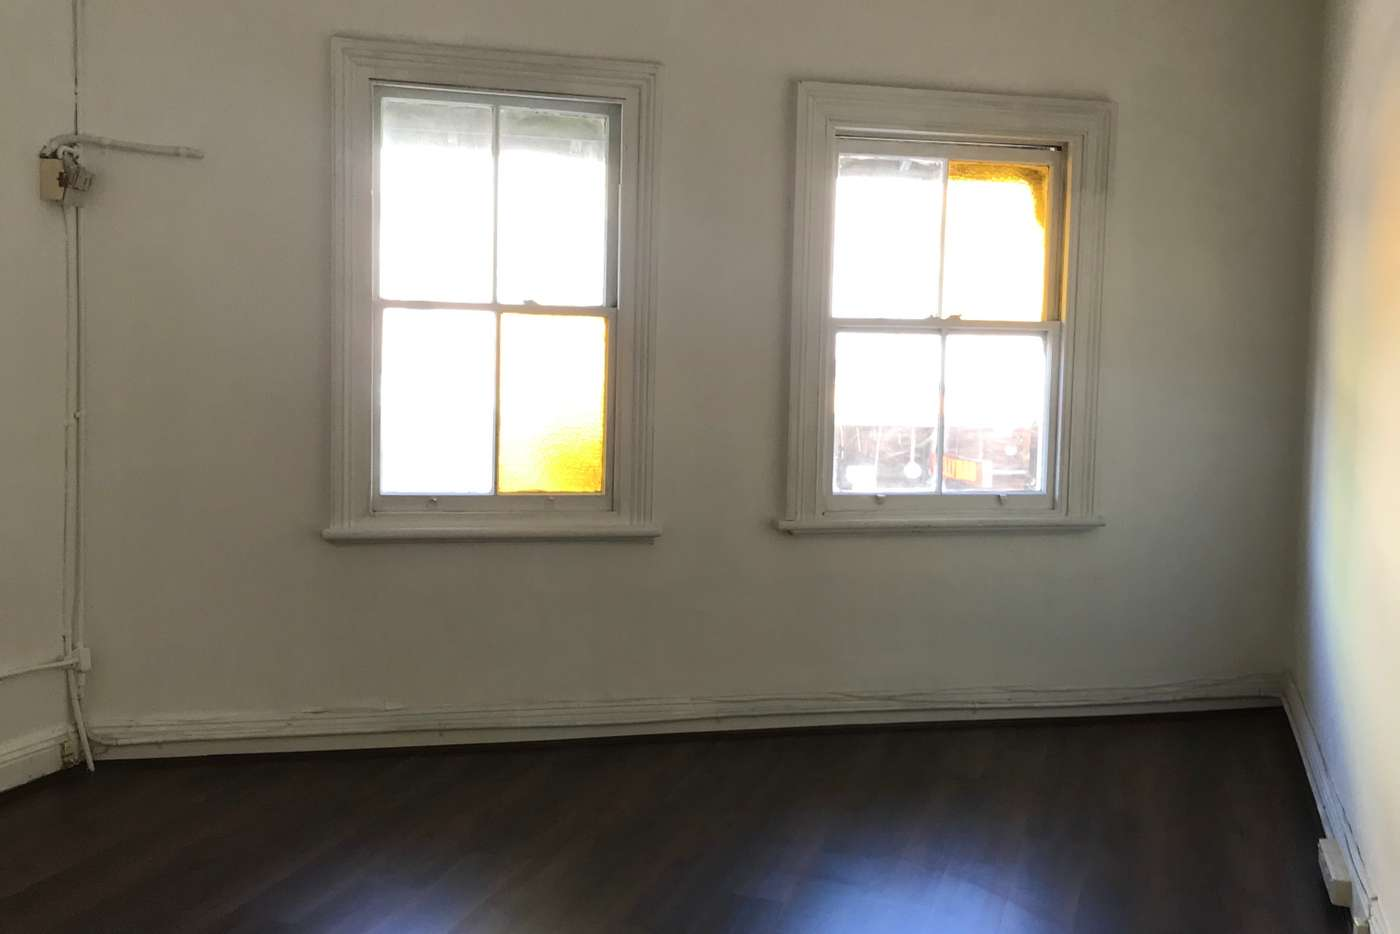 Sixth view of Homely apartment listing, 1/179 King Street, Newtown NSW 2042